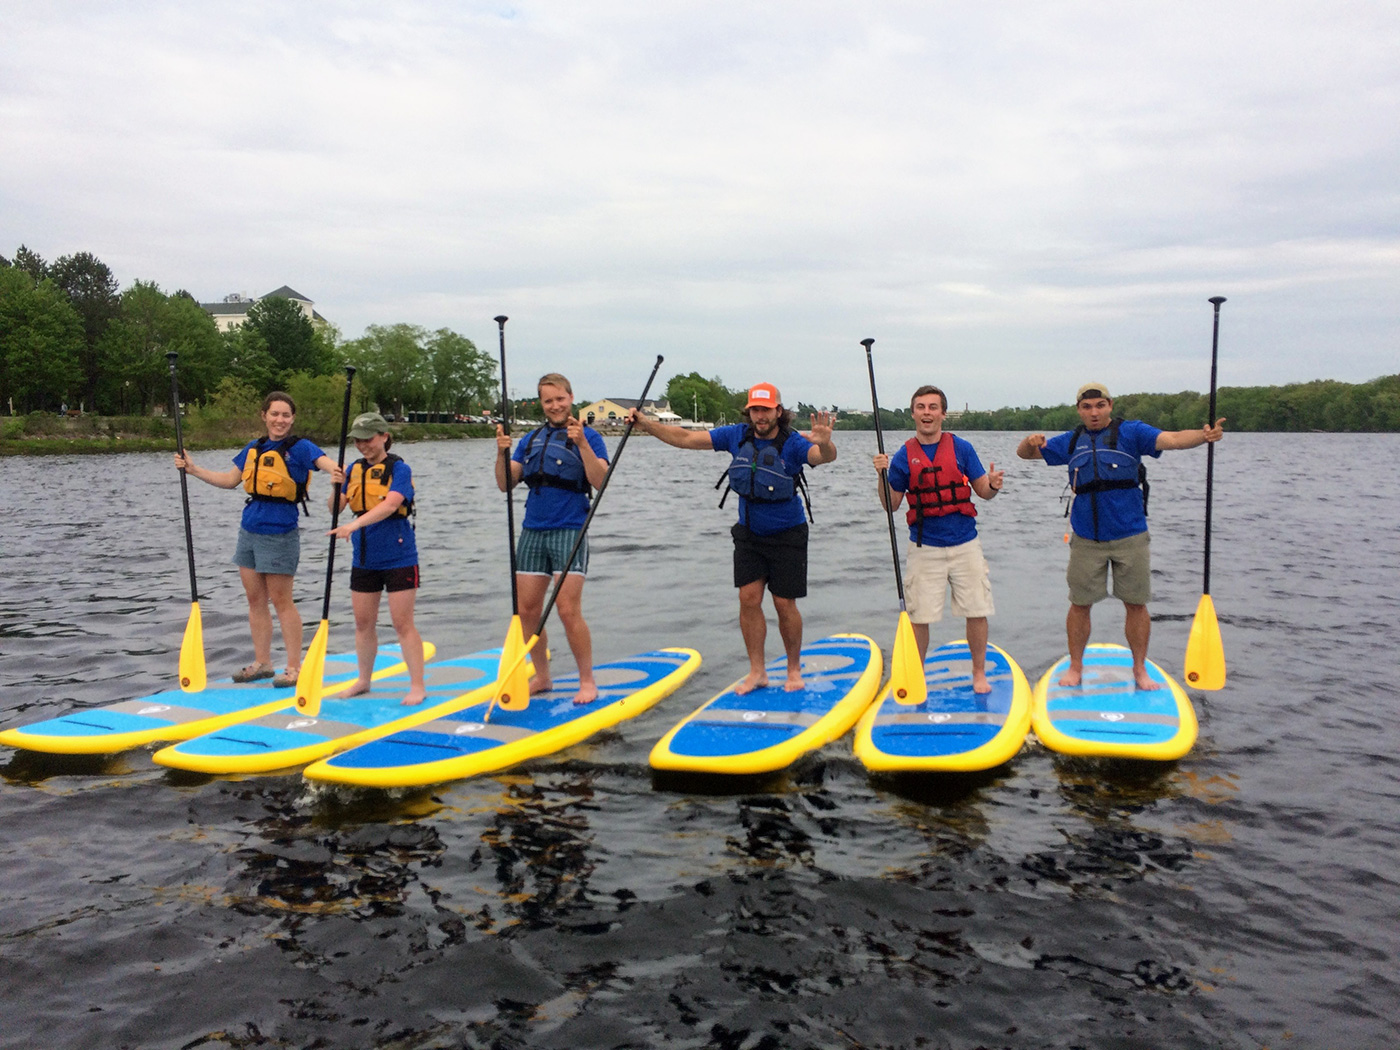 Six people on paddleboards with hands in the air